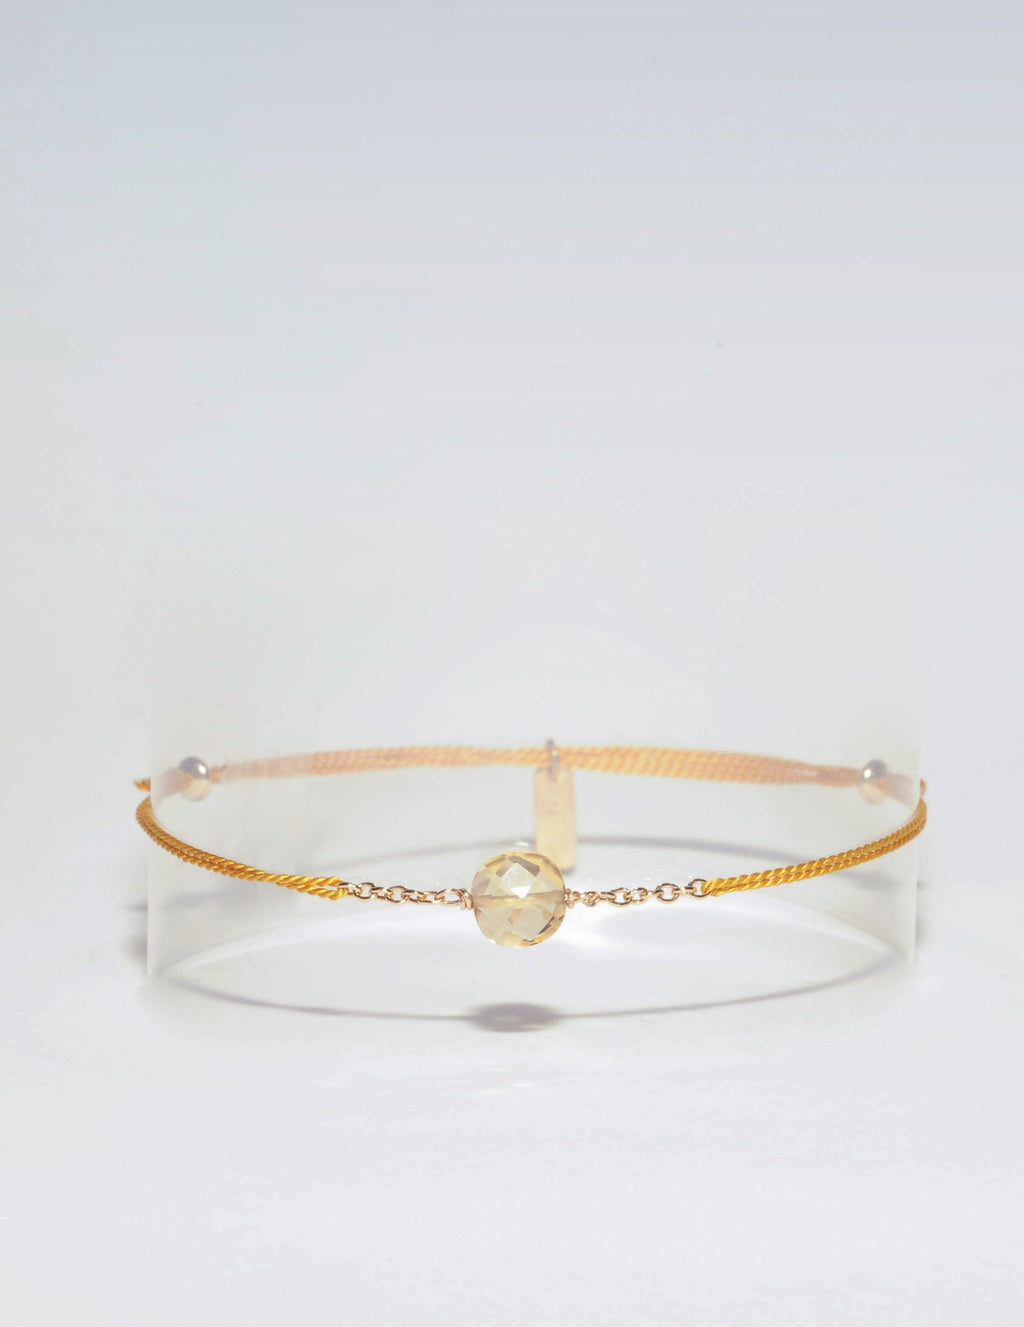 Bracelet cordon citrine, Collection Citrine en Plaqué or, Ô plum